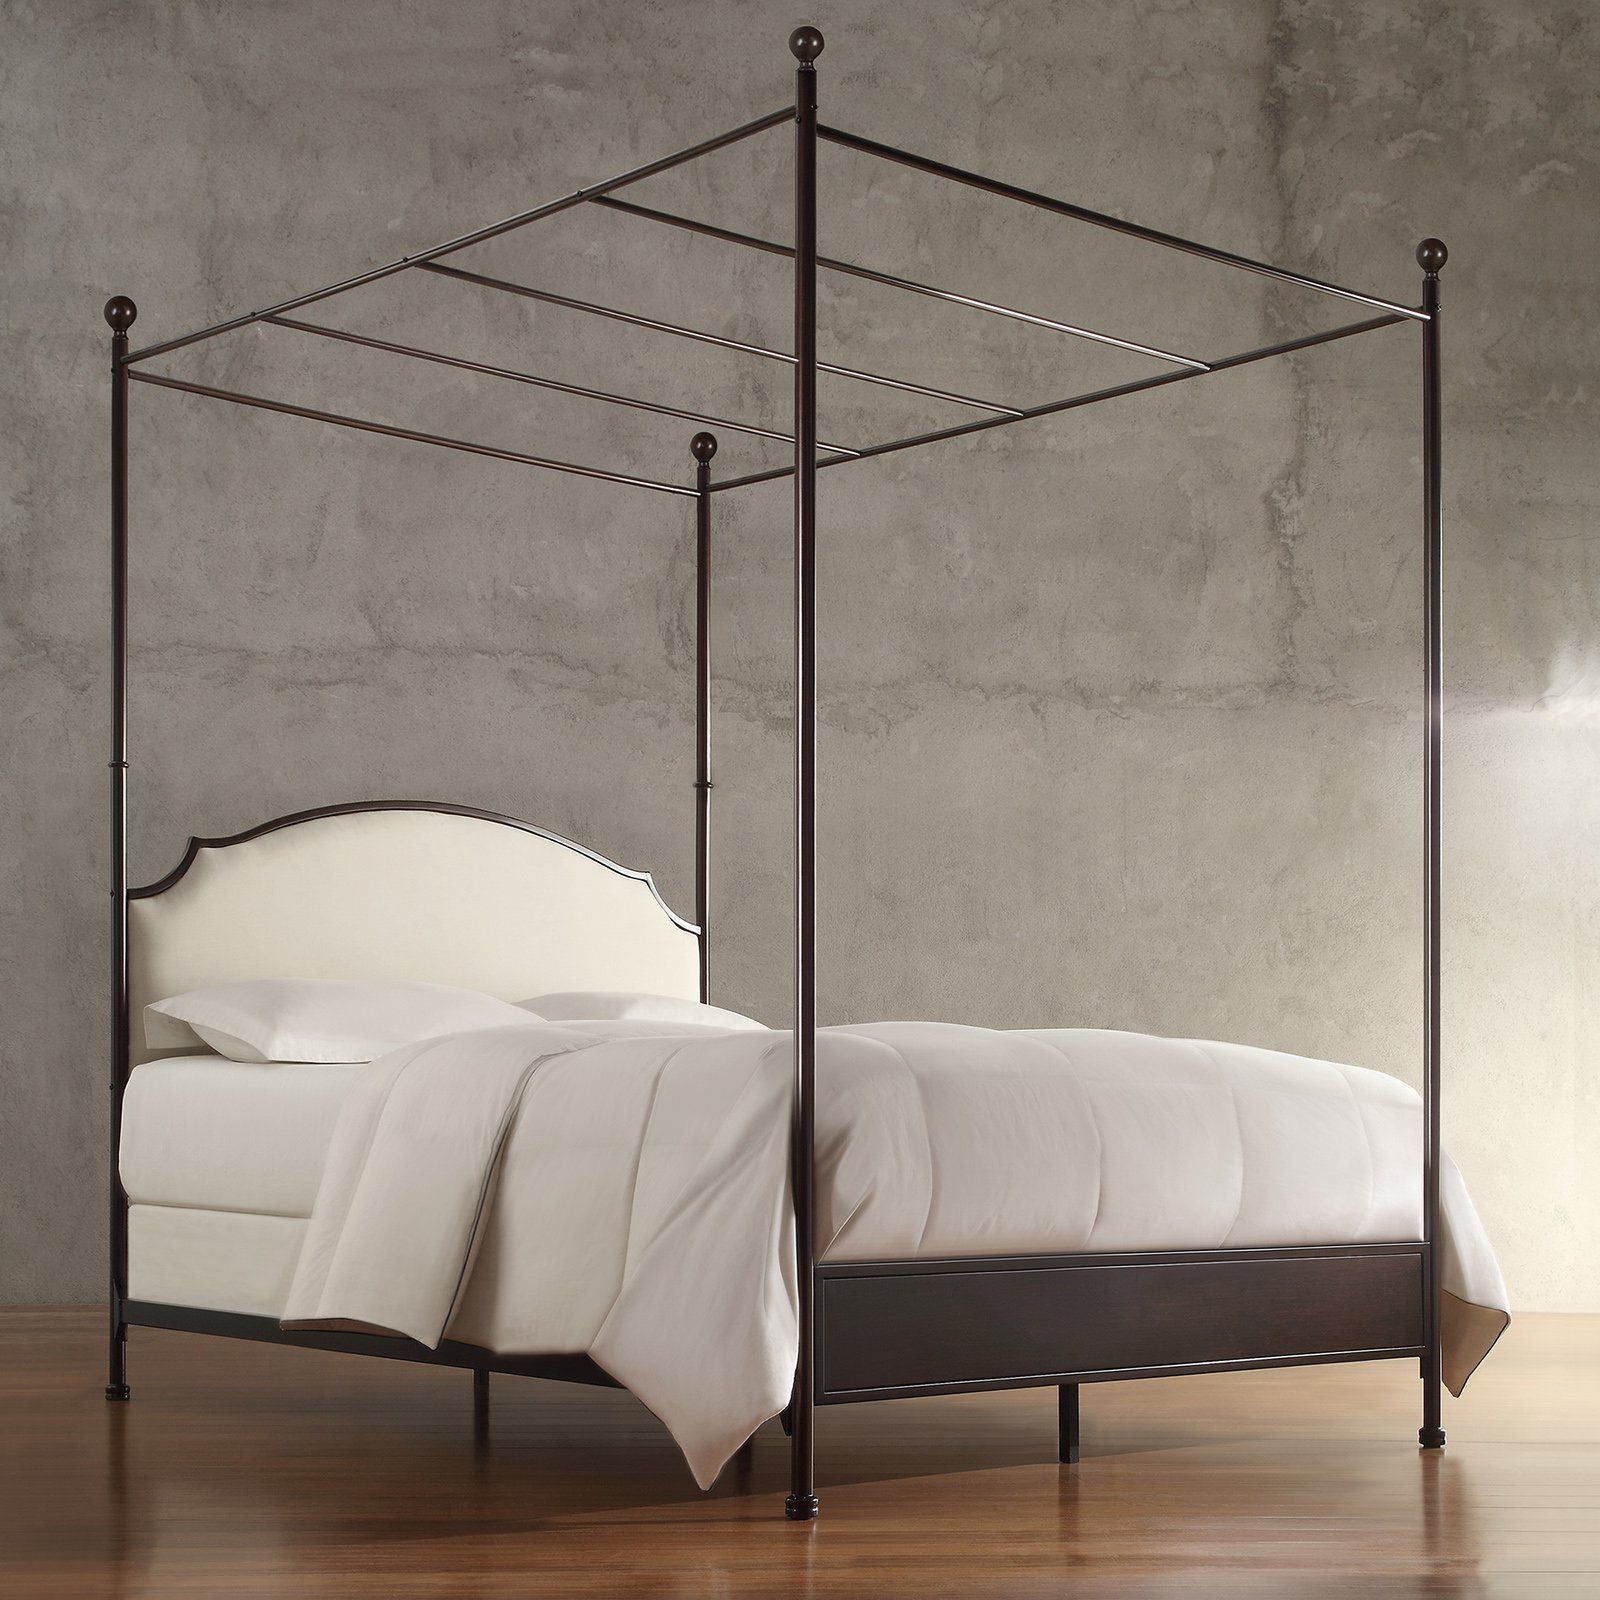 Weston Home Swindon Upholstered Metal Canopy Bed Metal